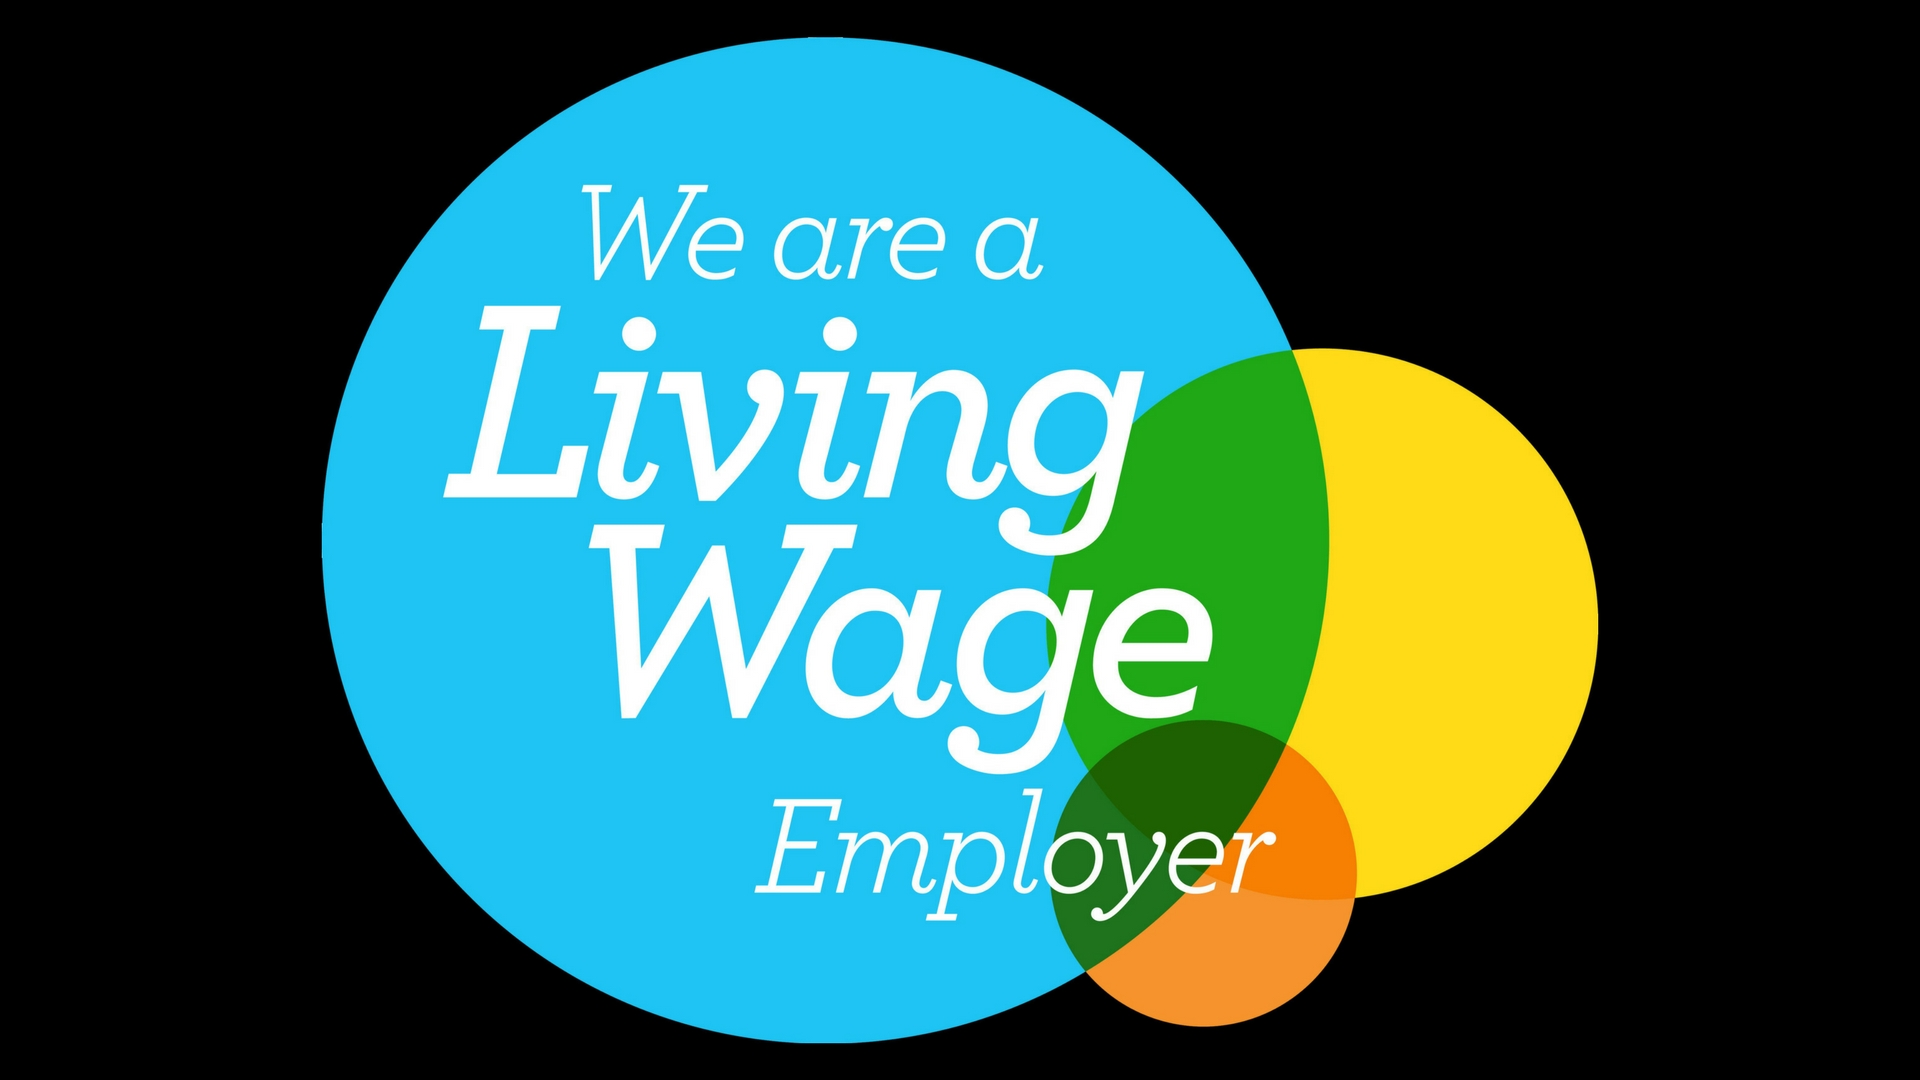 University accredited as a Living Wage employer